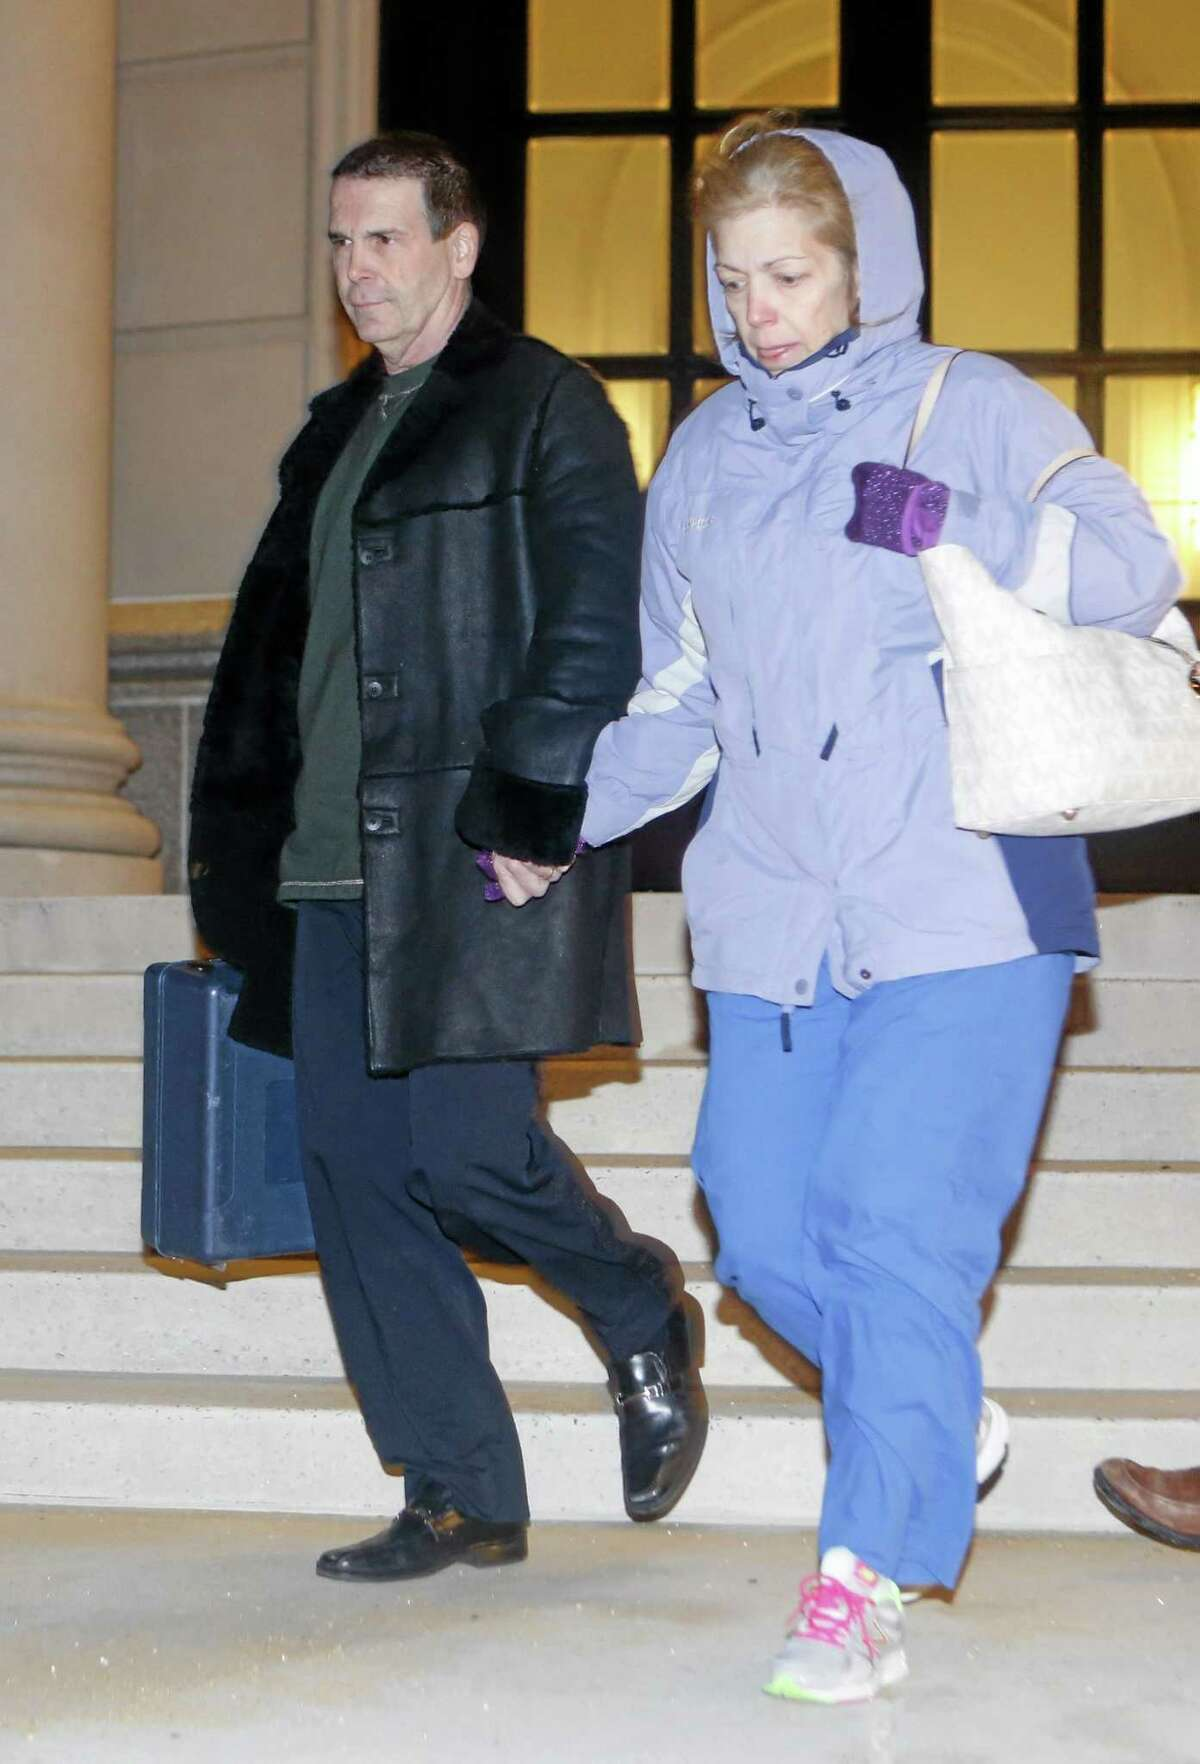 In this Jan. 23, 2014 photo, Mount Pleasant, N.Y. police Chief Brian Fanelli and his wife Sonja exit Federal Court in White Plains, N.Y. A five-week investigation has resulted in charges against at least 70 men and one woman in the New York City area in what officials called one of the largest-ever roundups locally of people who anonymously trade child porn over the Internet. Authorities decided to launch the operation after the arrest of Fanelli, who pleaded not guilty this week to federal charges of knowingly receiving and distributing child pornography. (AP Photo/The Journal News, Tania Savayan) NYC OUT, NO SALES